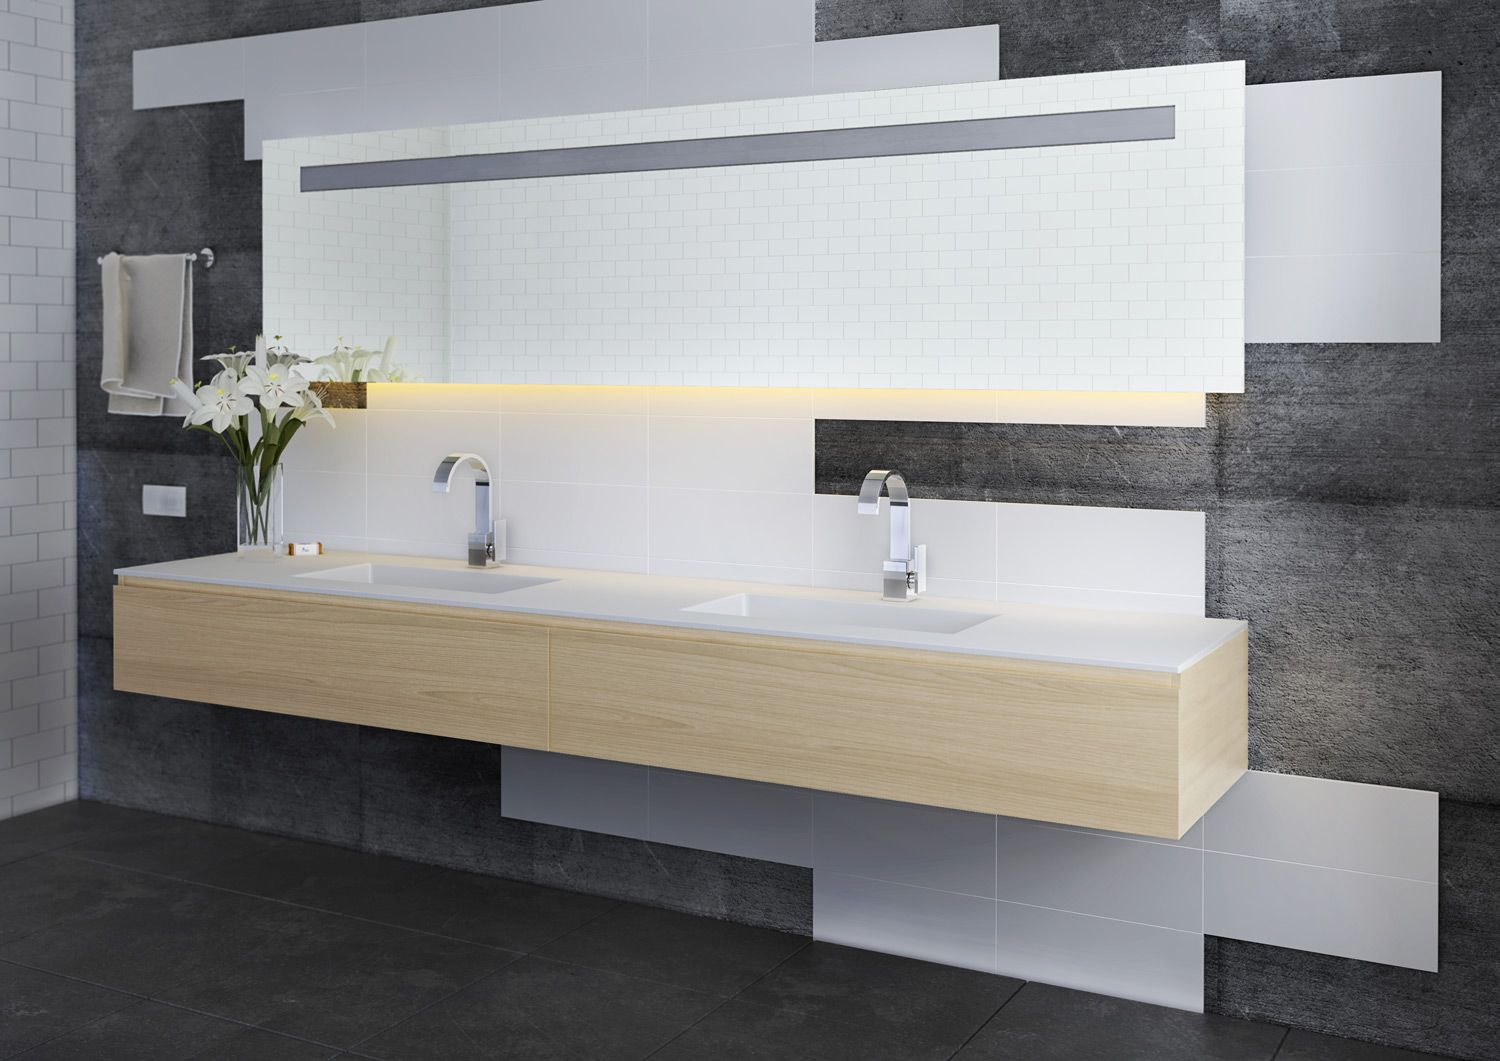 Who Bathroom Warehouse For Exclusive Renovation Ideas Free Planner Showrooms And Online